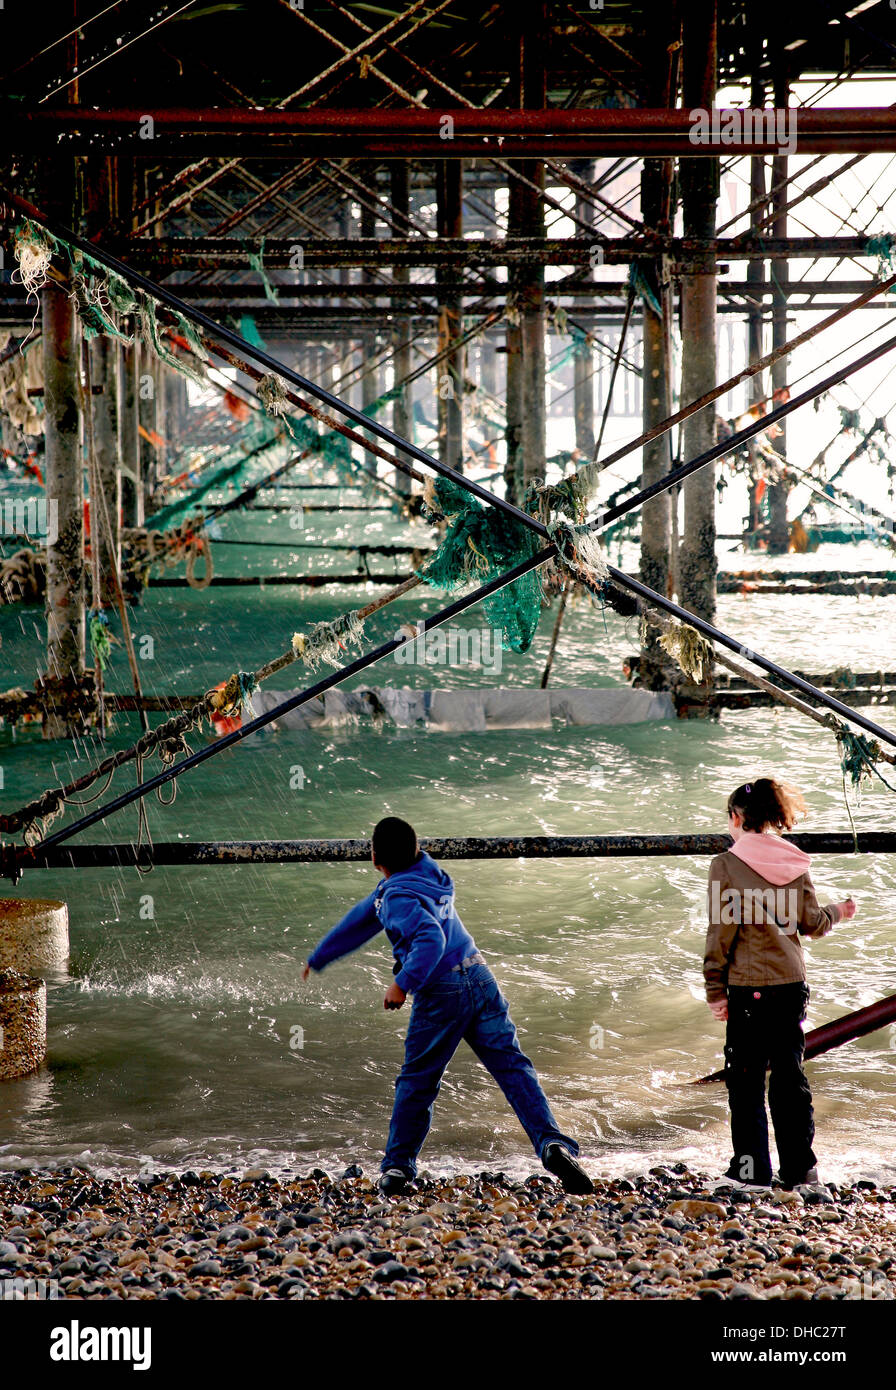 flotsam and jetsam under Brighton pier with kids throwing stones into the sea - Stock Image